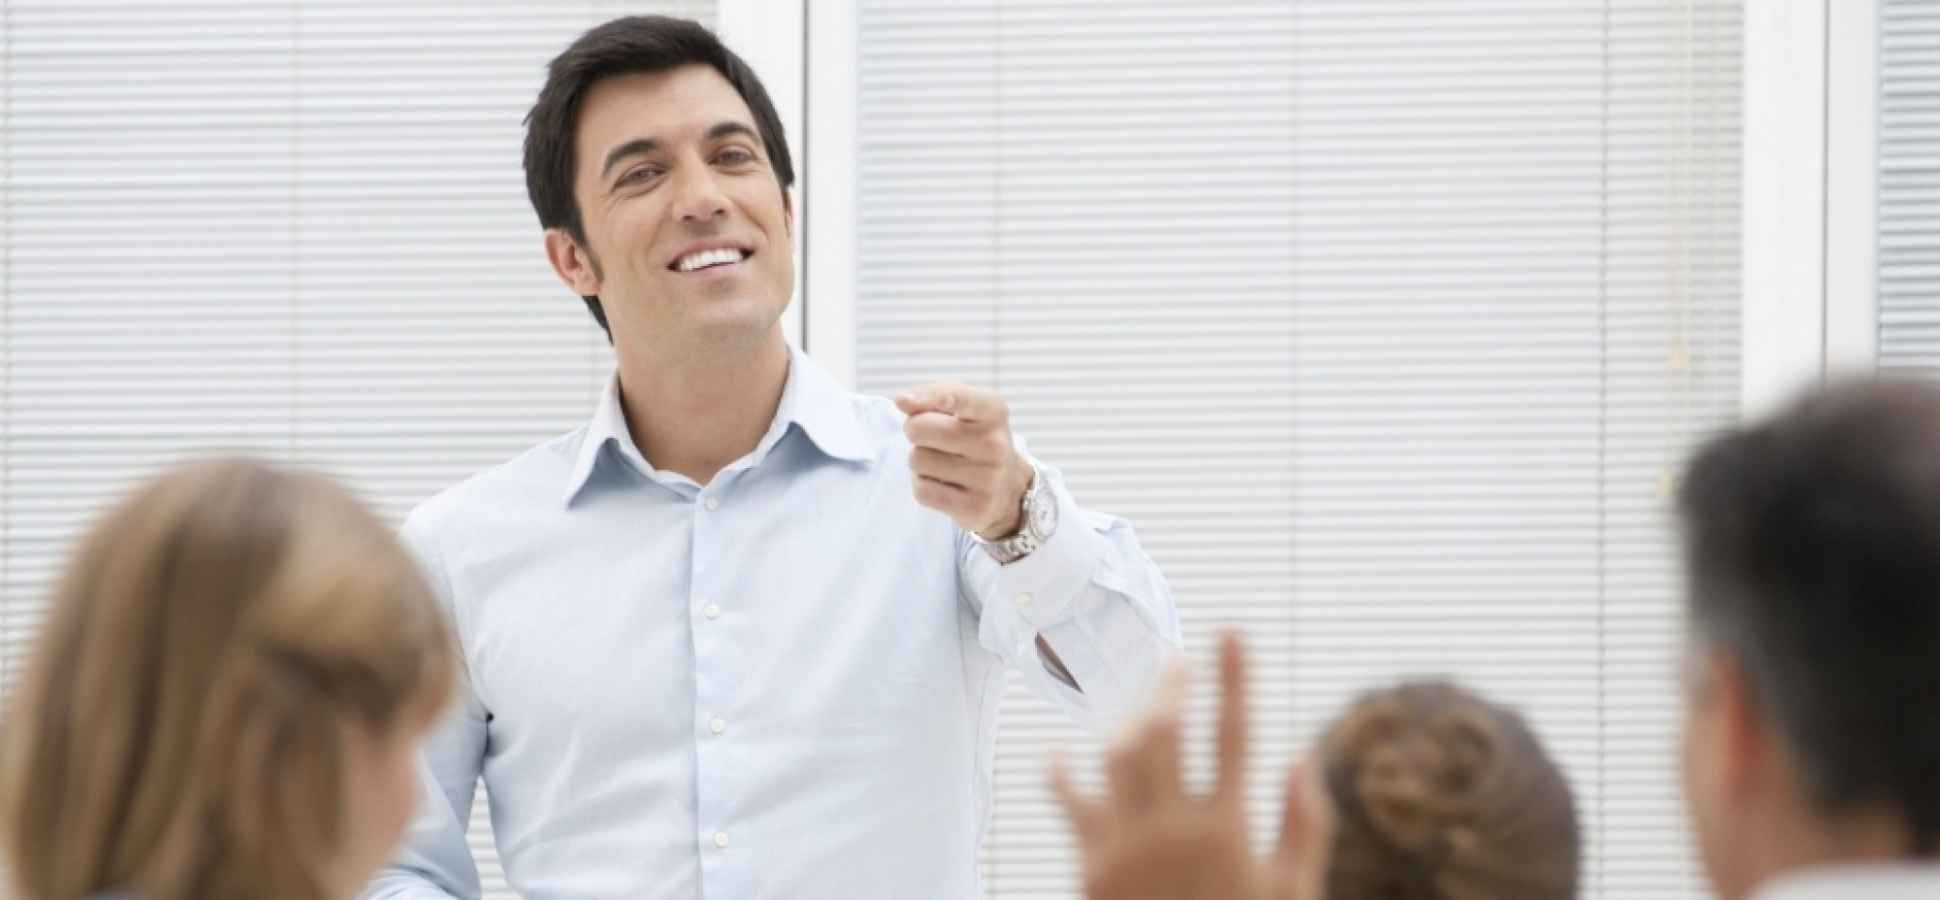 3 Simple Habits That Will Make You a Better Business Leader